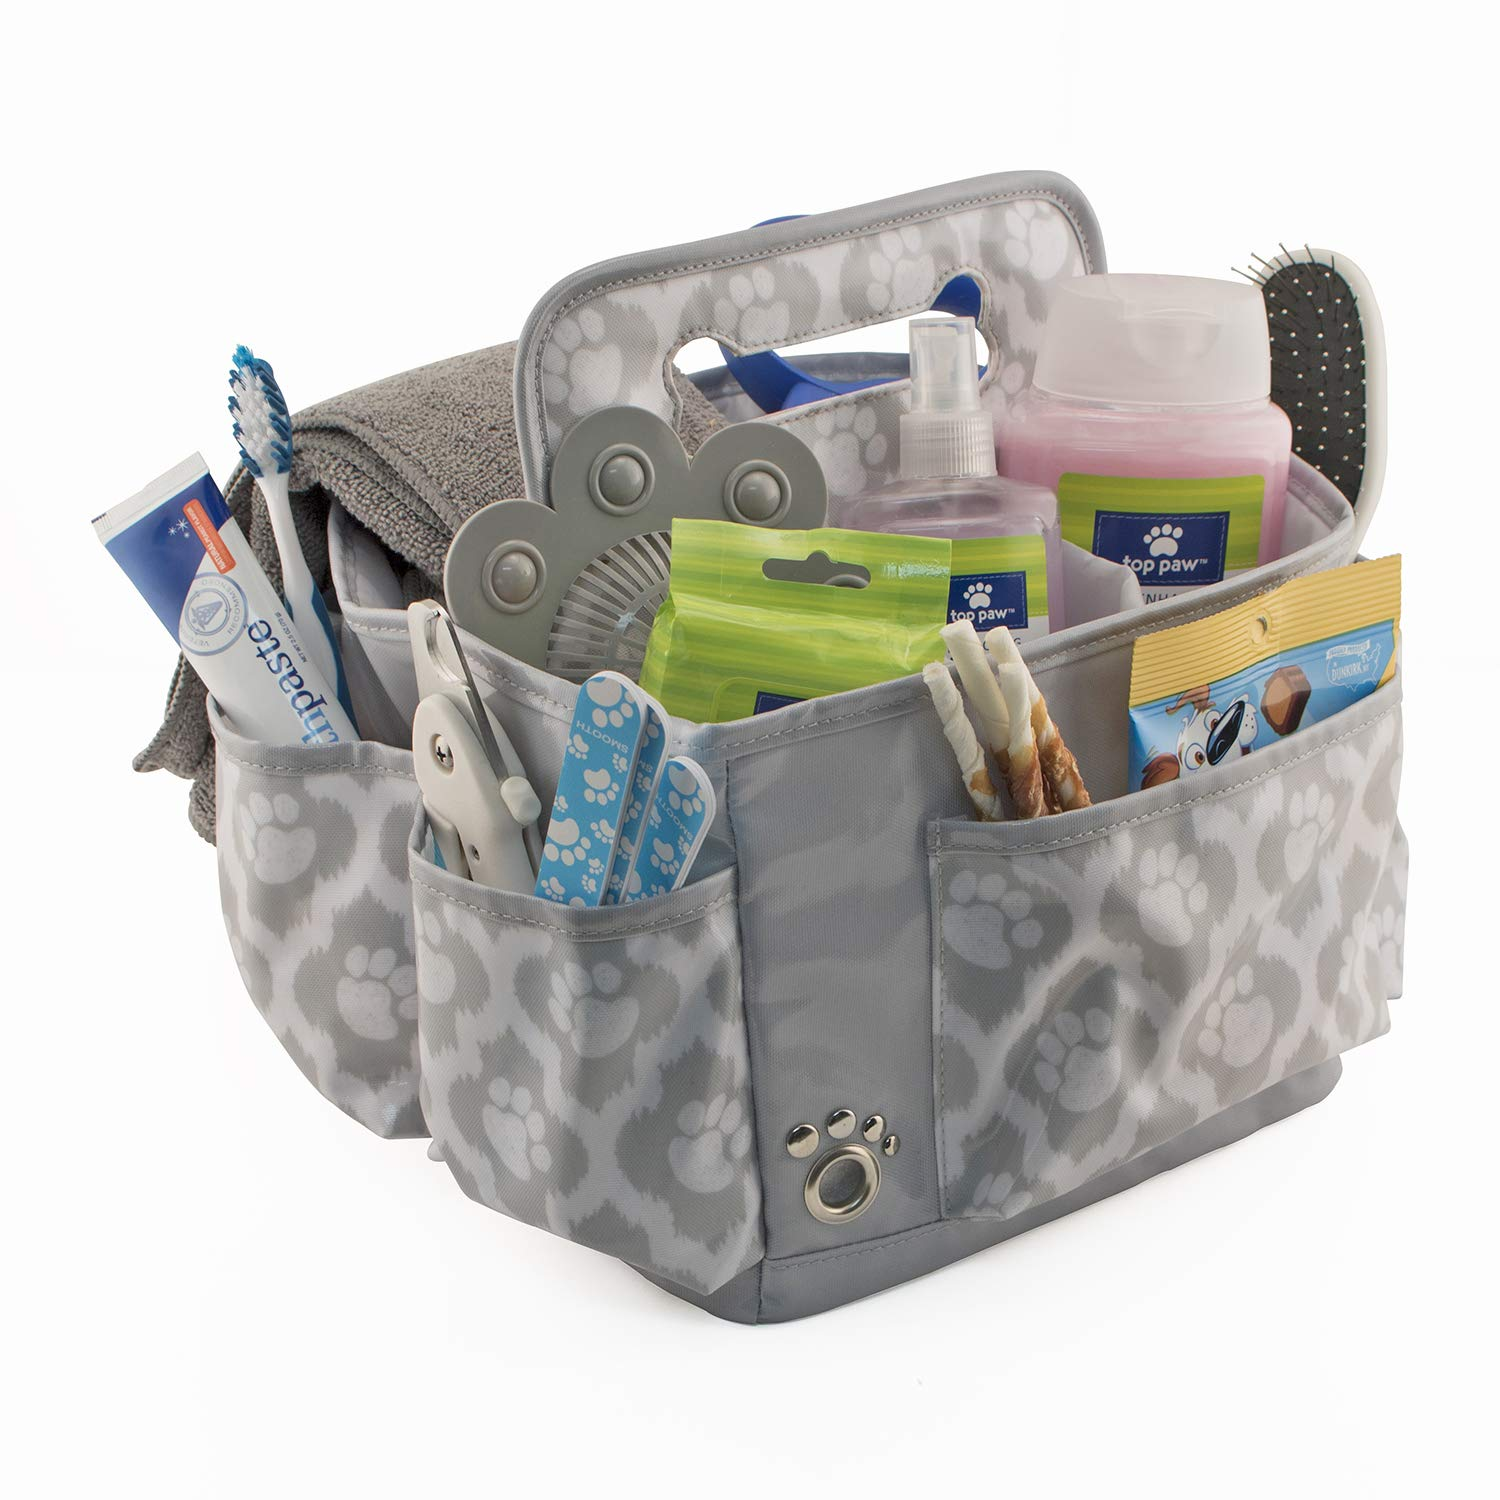 Everything Mary Pet Essentials Grooming Caddy - Deluxe Premium Pet Organizer Storage Tote Bag Bin for Dog Wash Shampoo Accessories